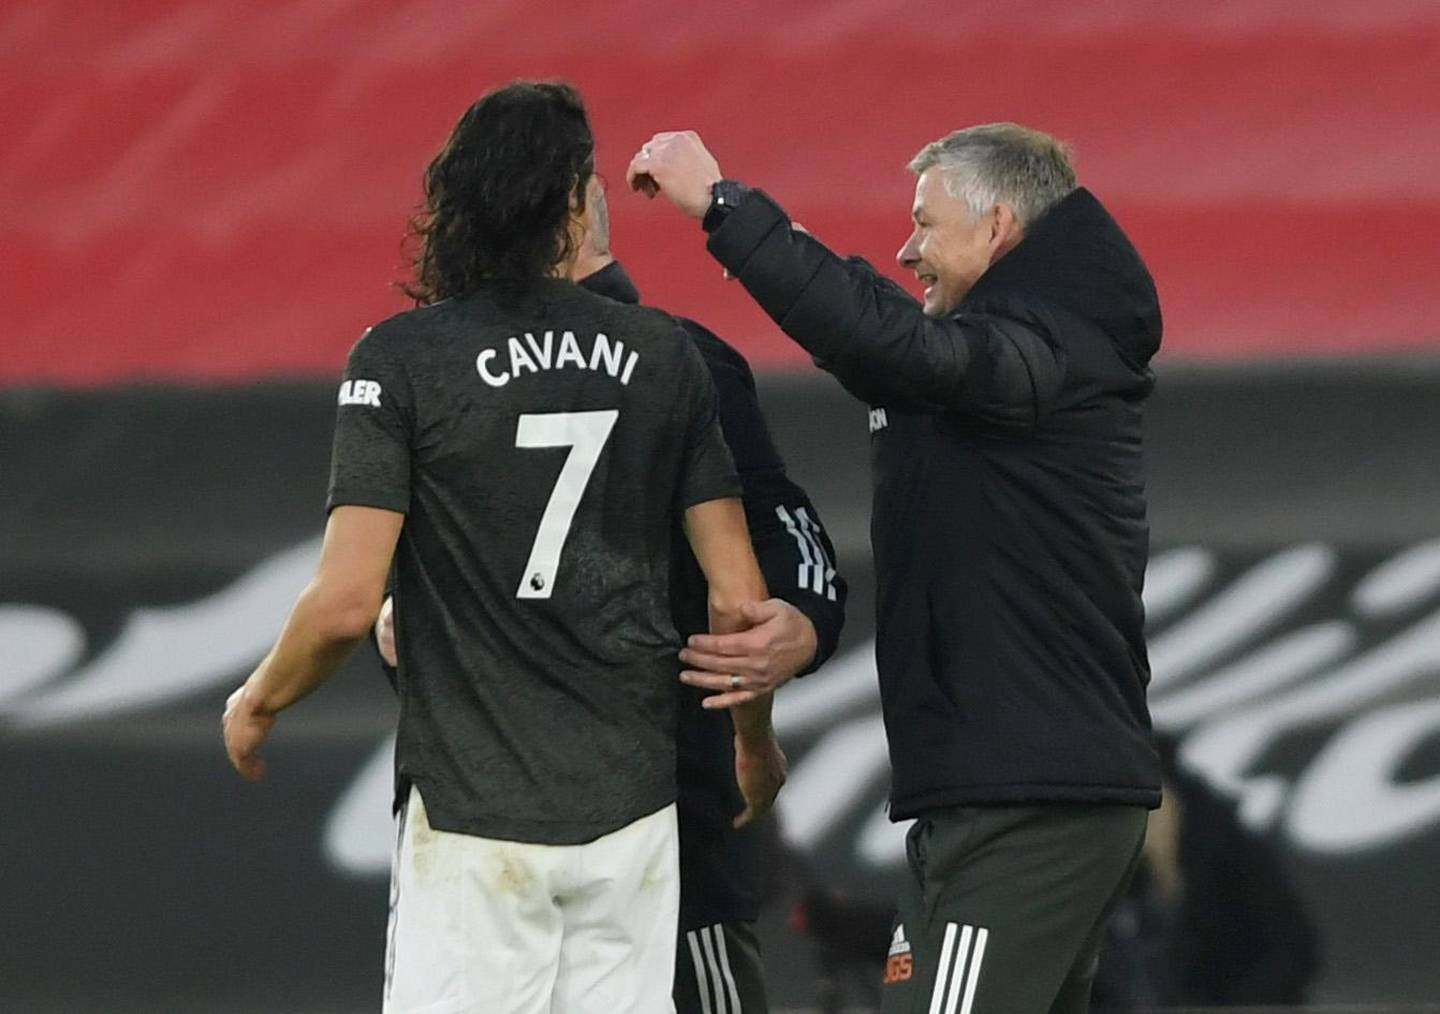 Soccer Football - Premier League - Southampton v Manchester United - St Mary's Stadium, Southampton, Britain - November 29, 2020 Manchester United's Edinson Cavani celebrates with manager Ole Gunnar Solskjaer Pool via REUTERS/Mike Hewitt EDITORIAL USE ONLY. No use with unauthorized audio, video, data, fixture lists, club/league logos or 'live' services. Online in-match use limited to 75 images, no video emulation. No use in betting, games or single club /league/player publications.  Please contact your account representative for further details.